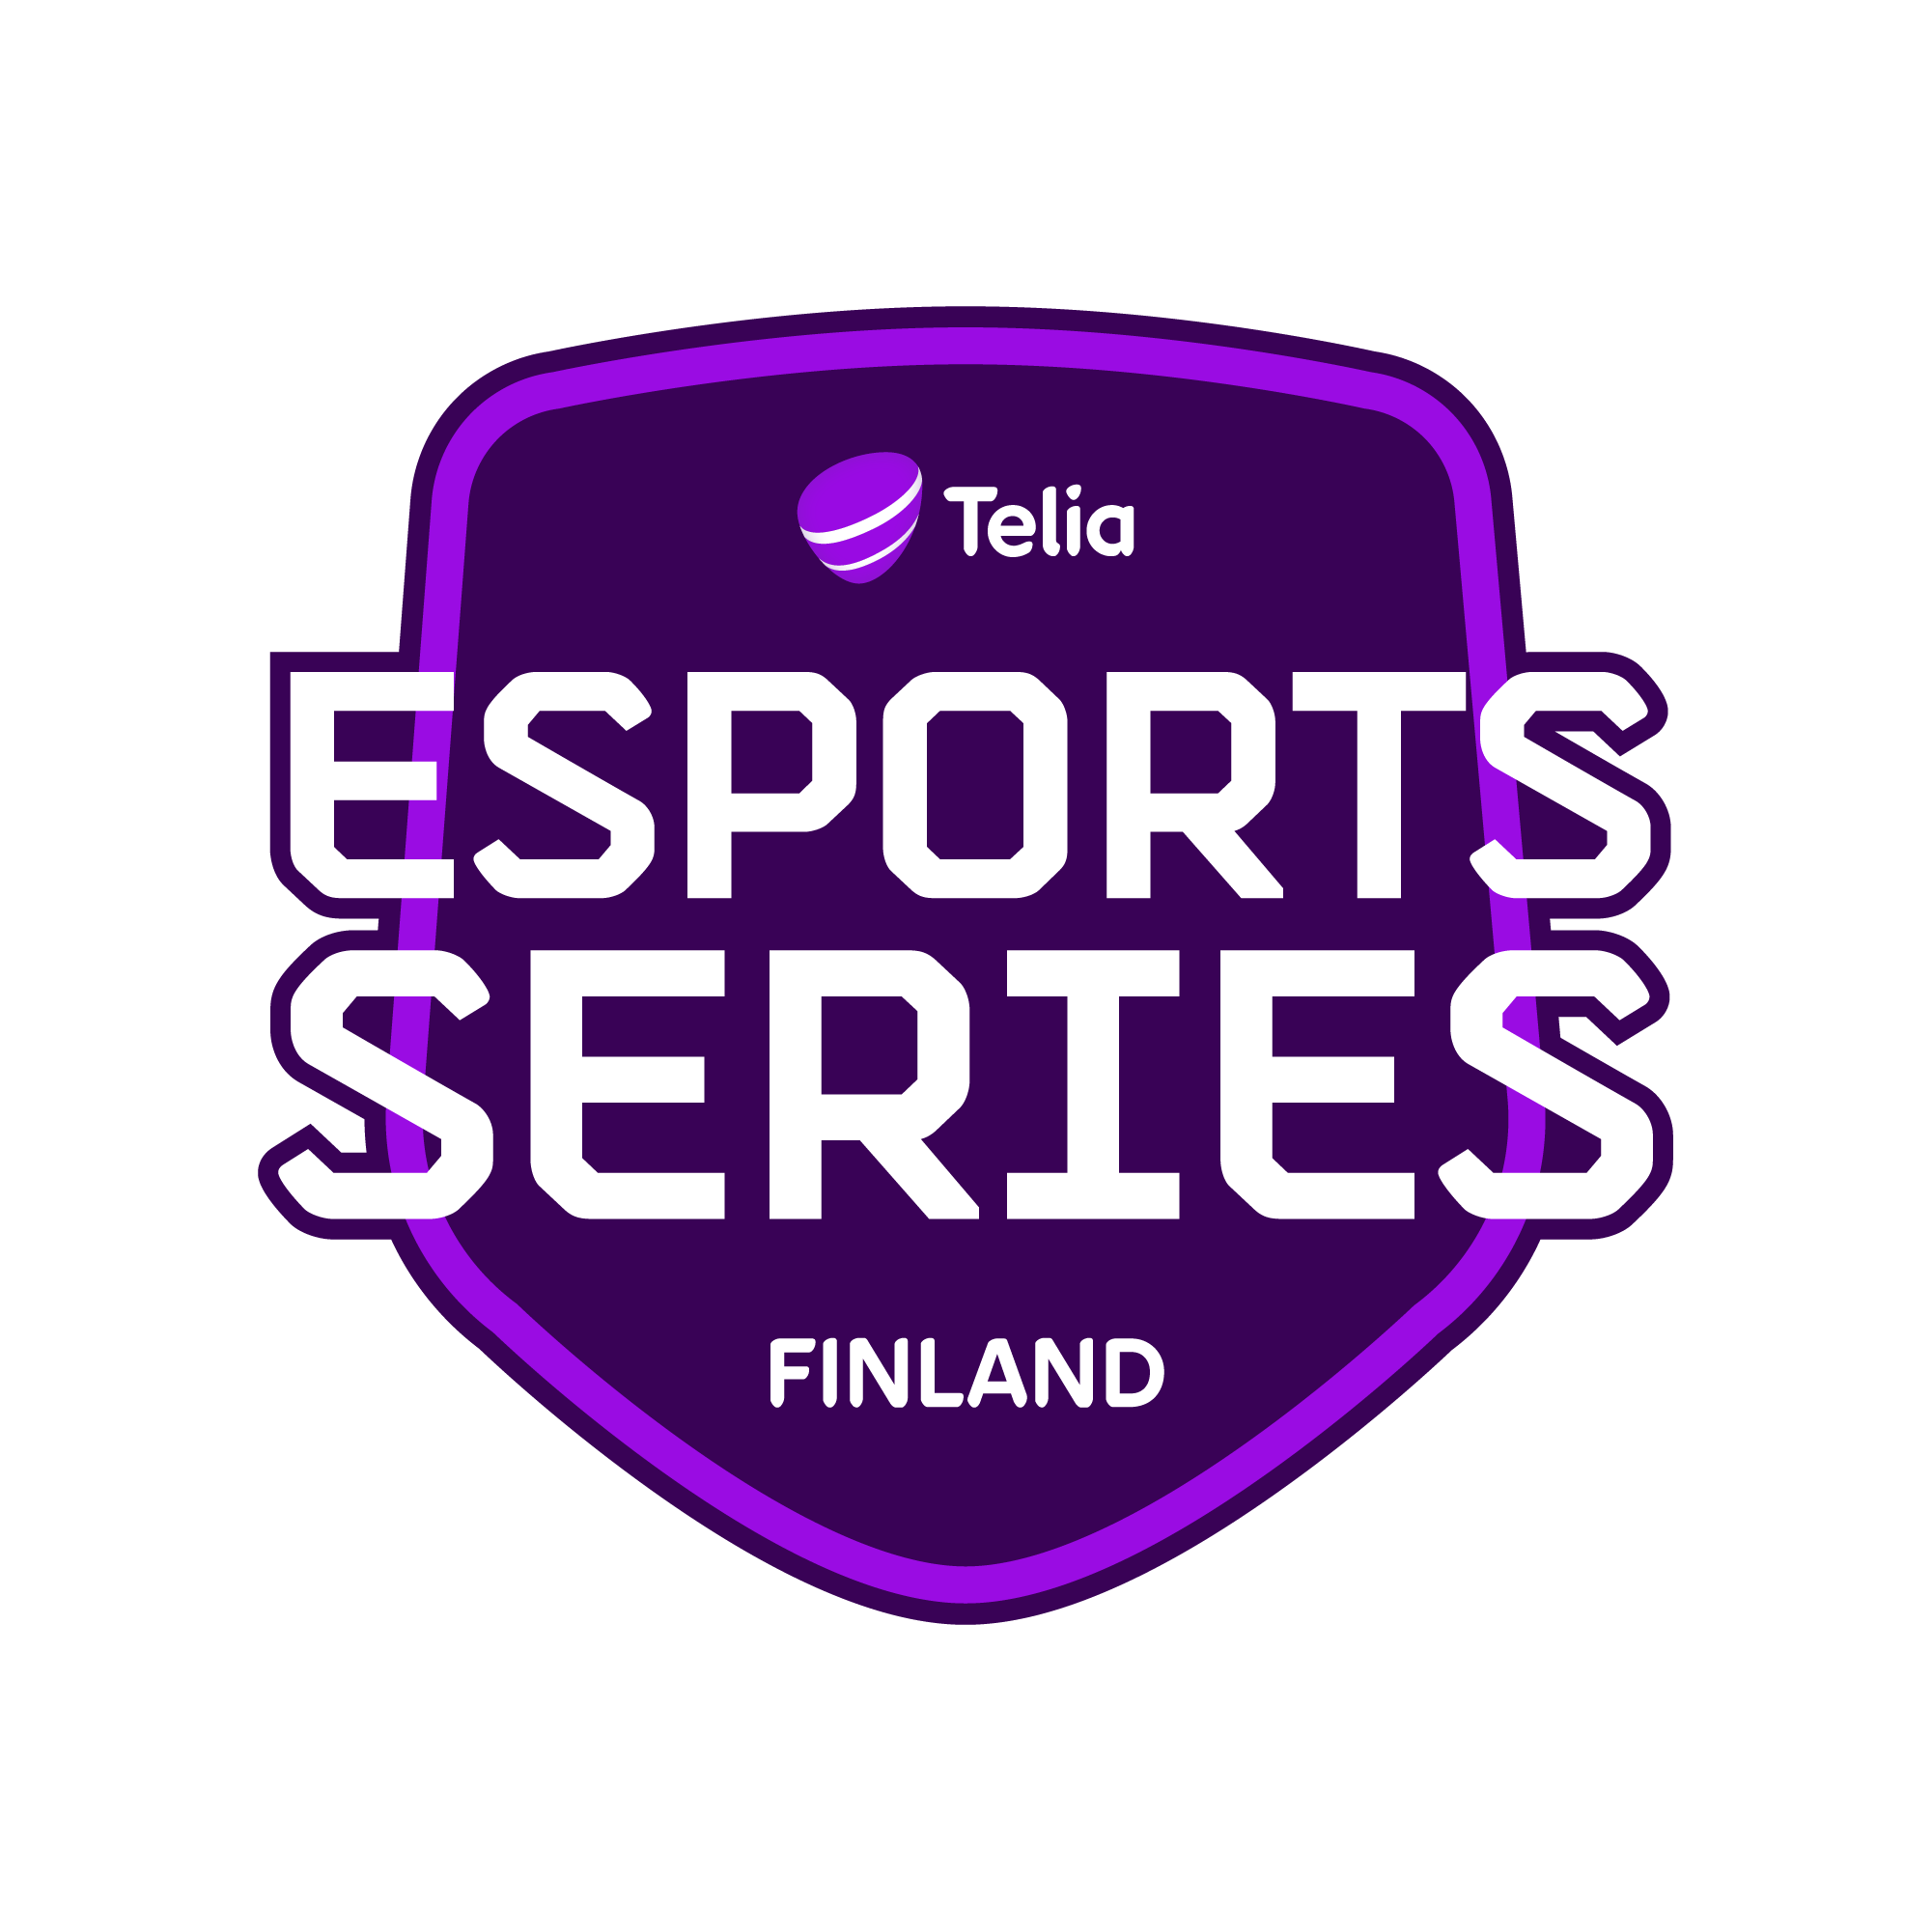 Telia Esports Series CS:GO Series